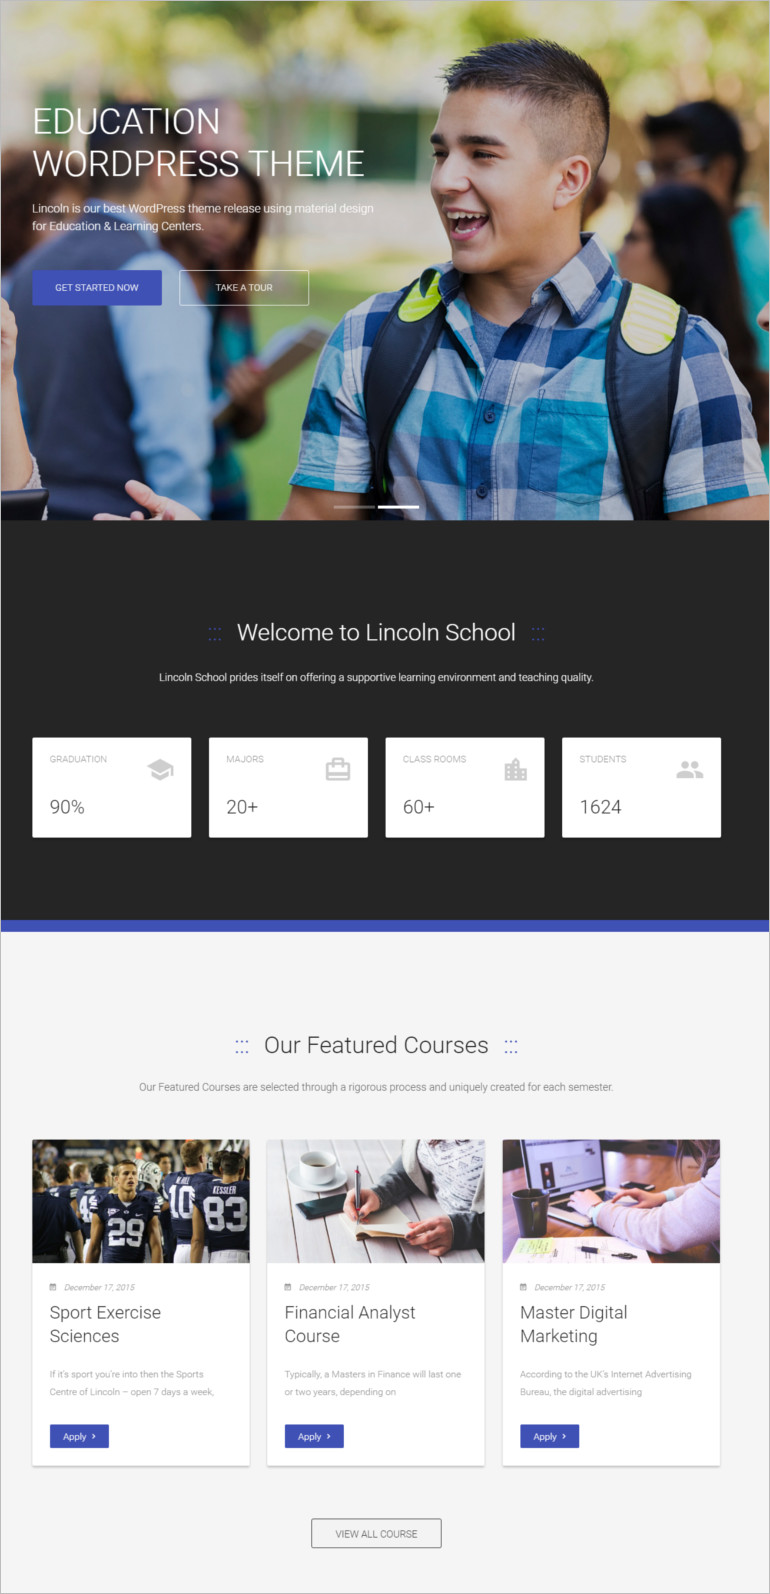 Education Material Design WordPress Theme